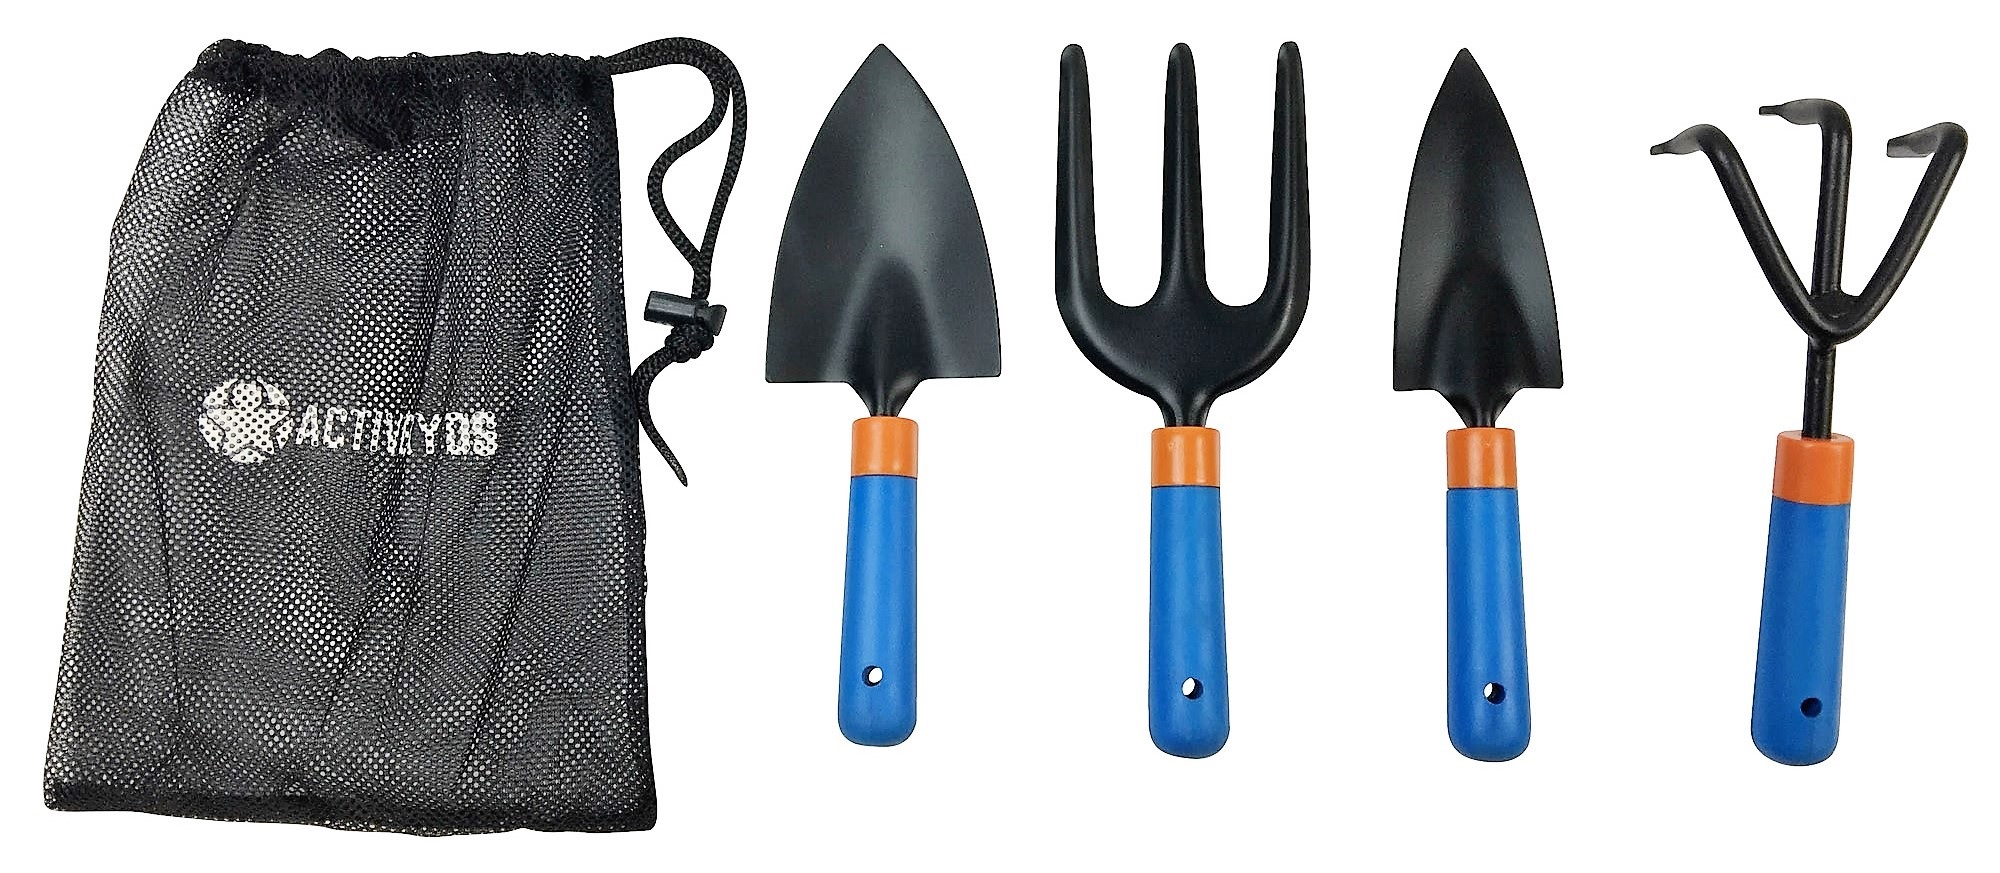 products z fork digging by tools sneeboer company garden tool